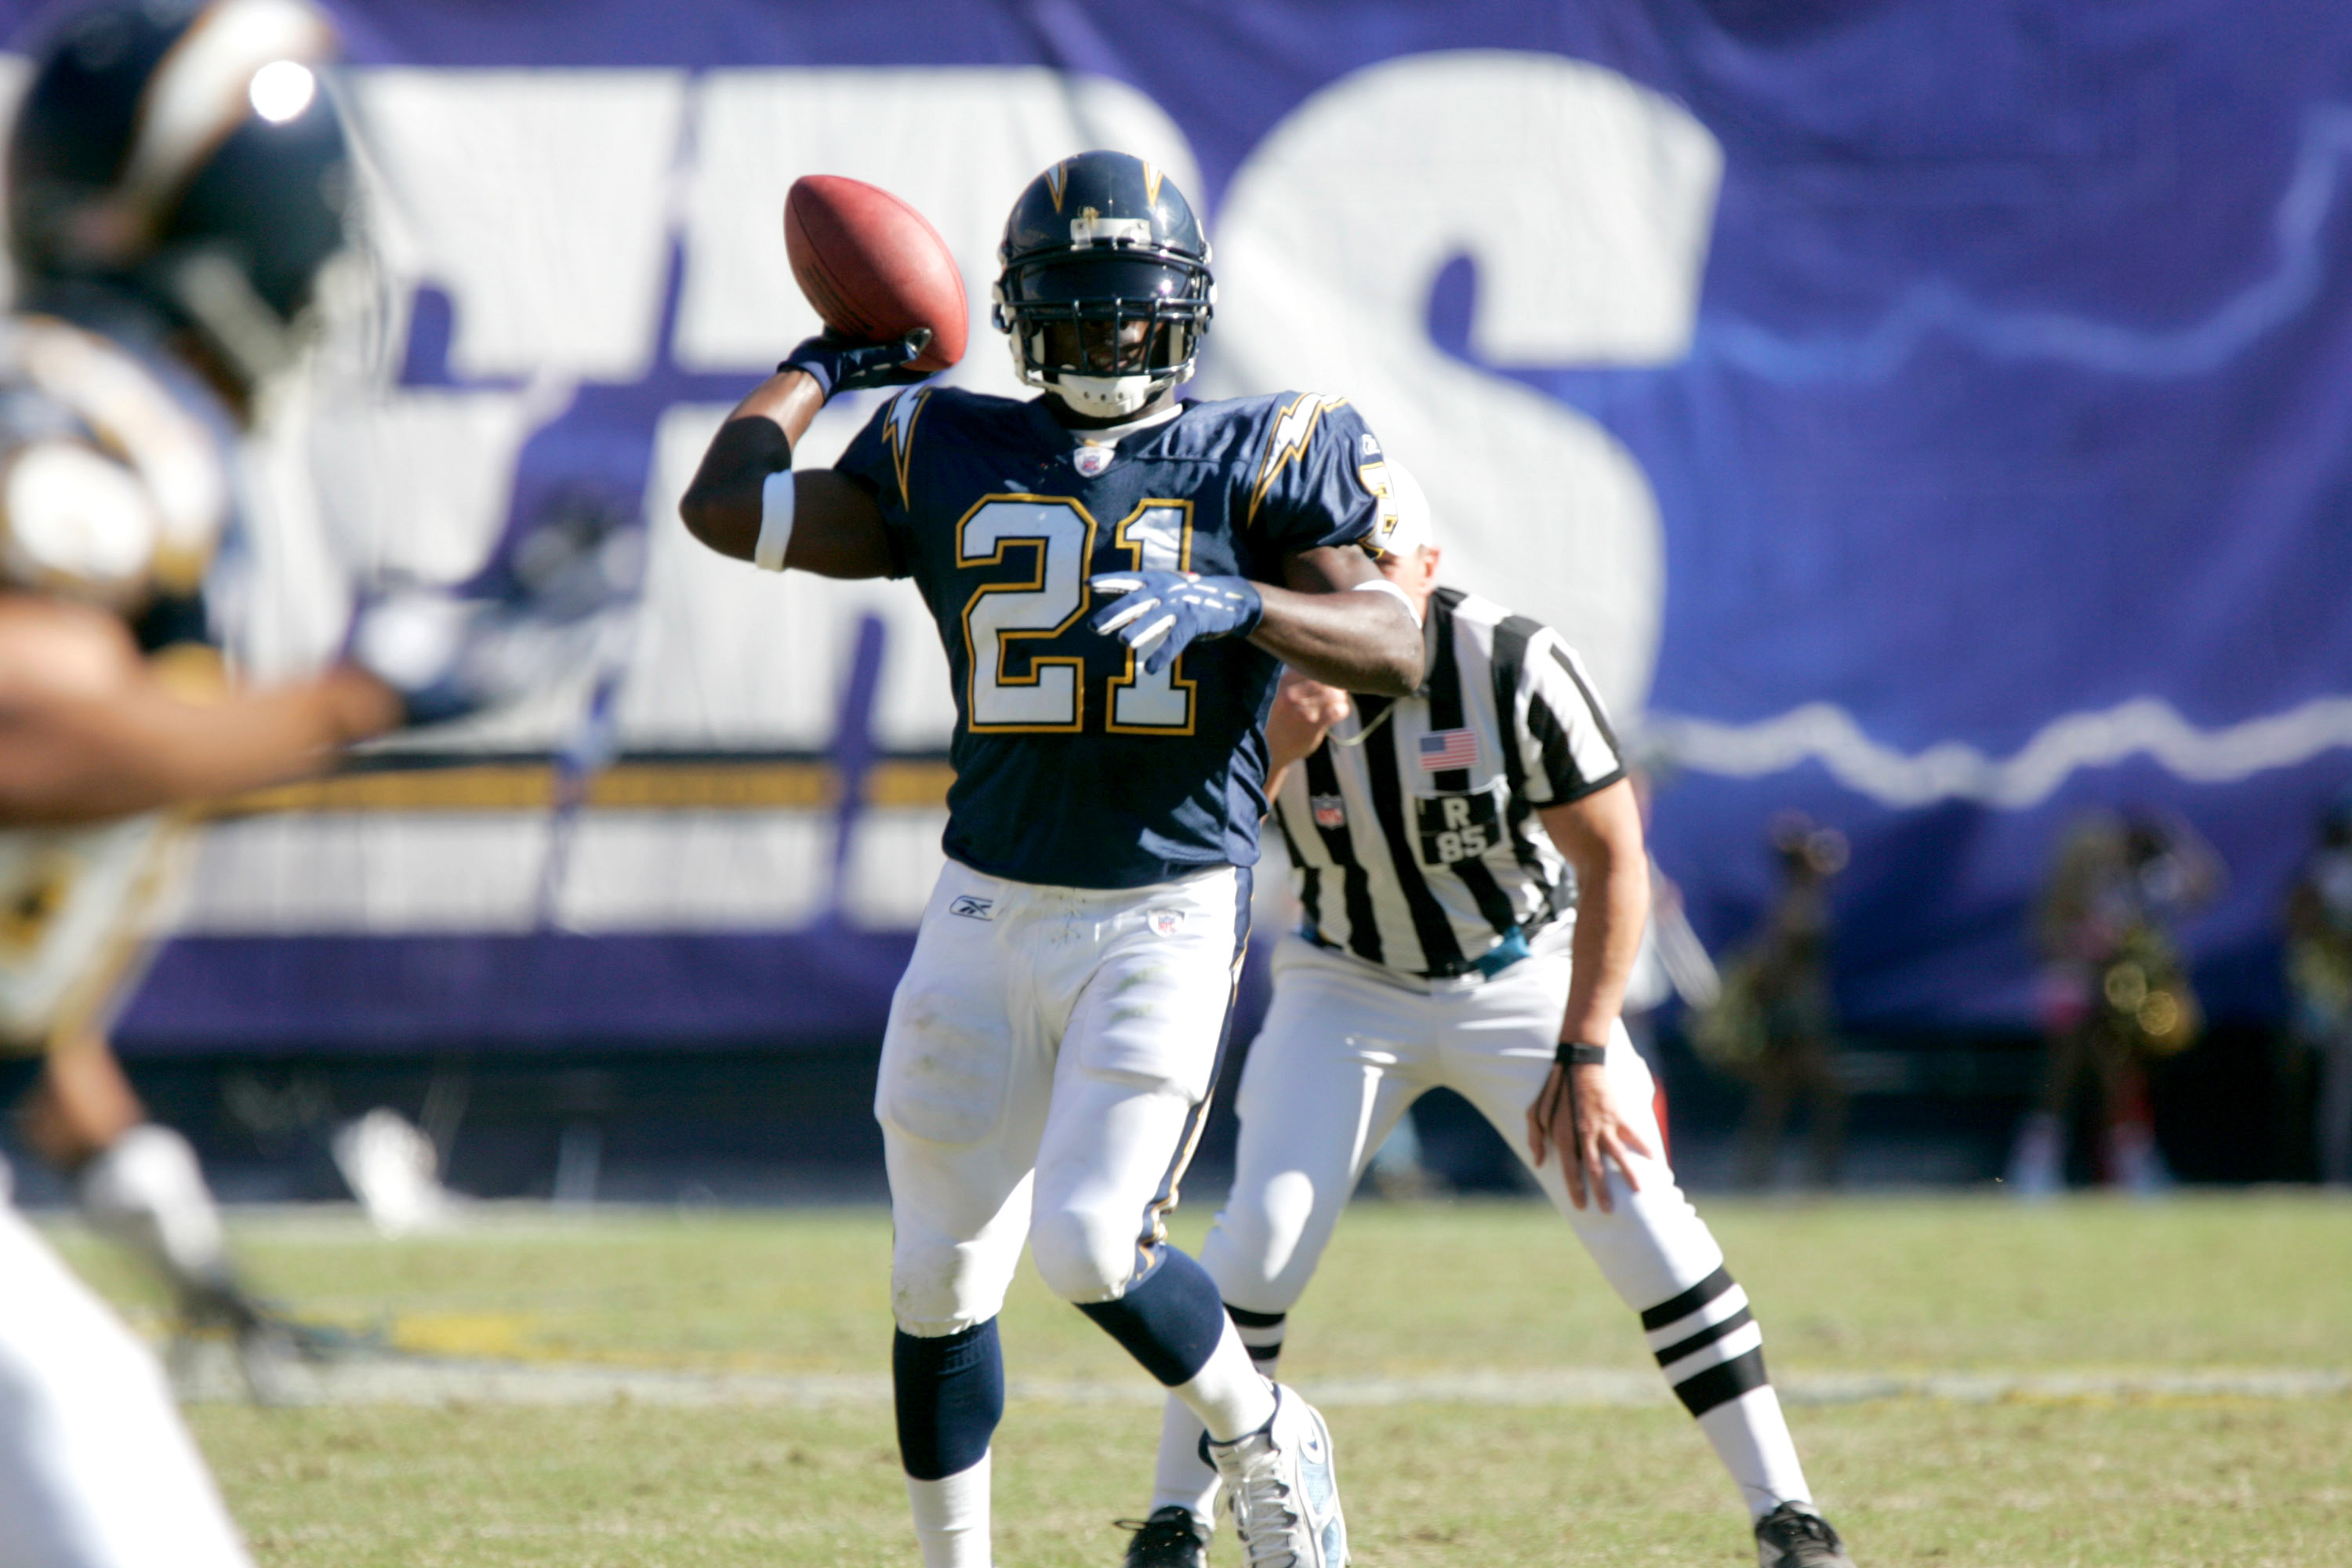 LaDainian Tomlinson throwing a pass during a Chargers game